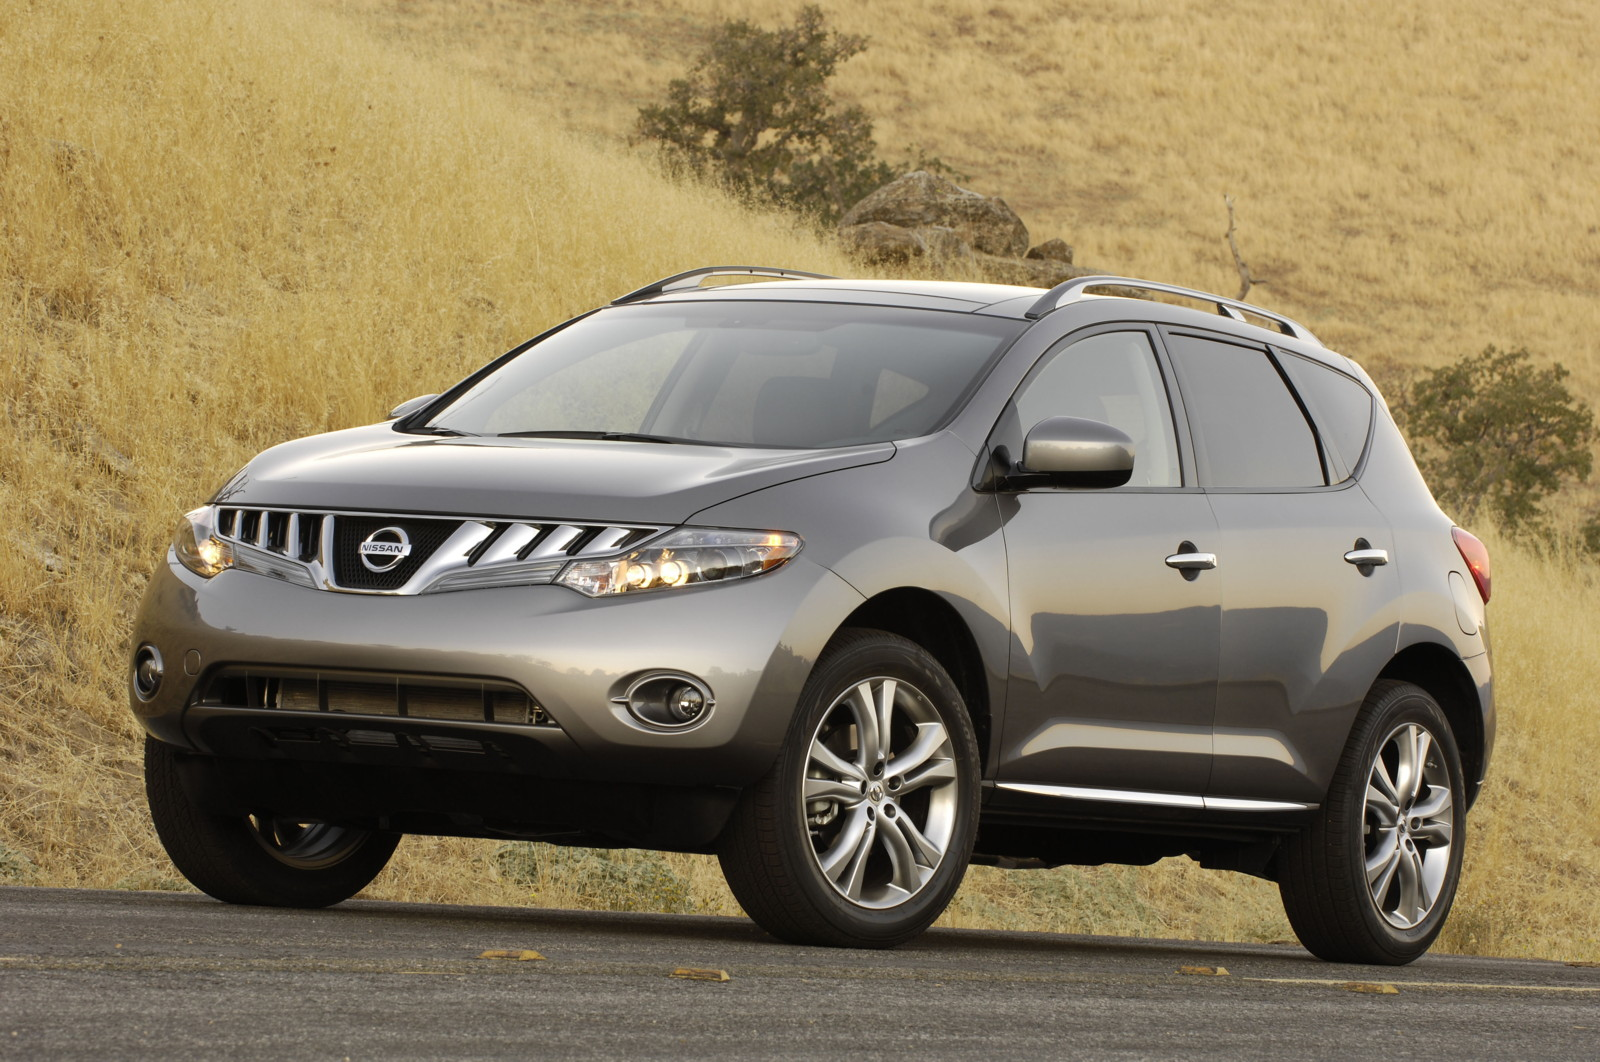 2010 Nissan Murano Review Ratings Specs Prices And Photos The Car Connection